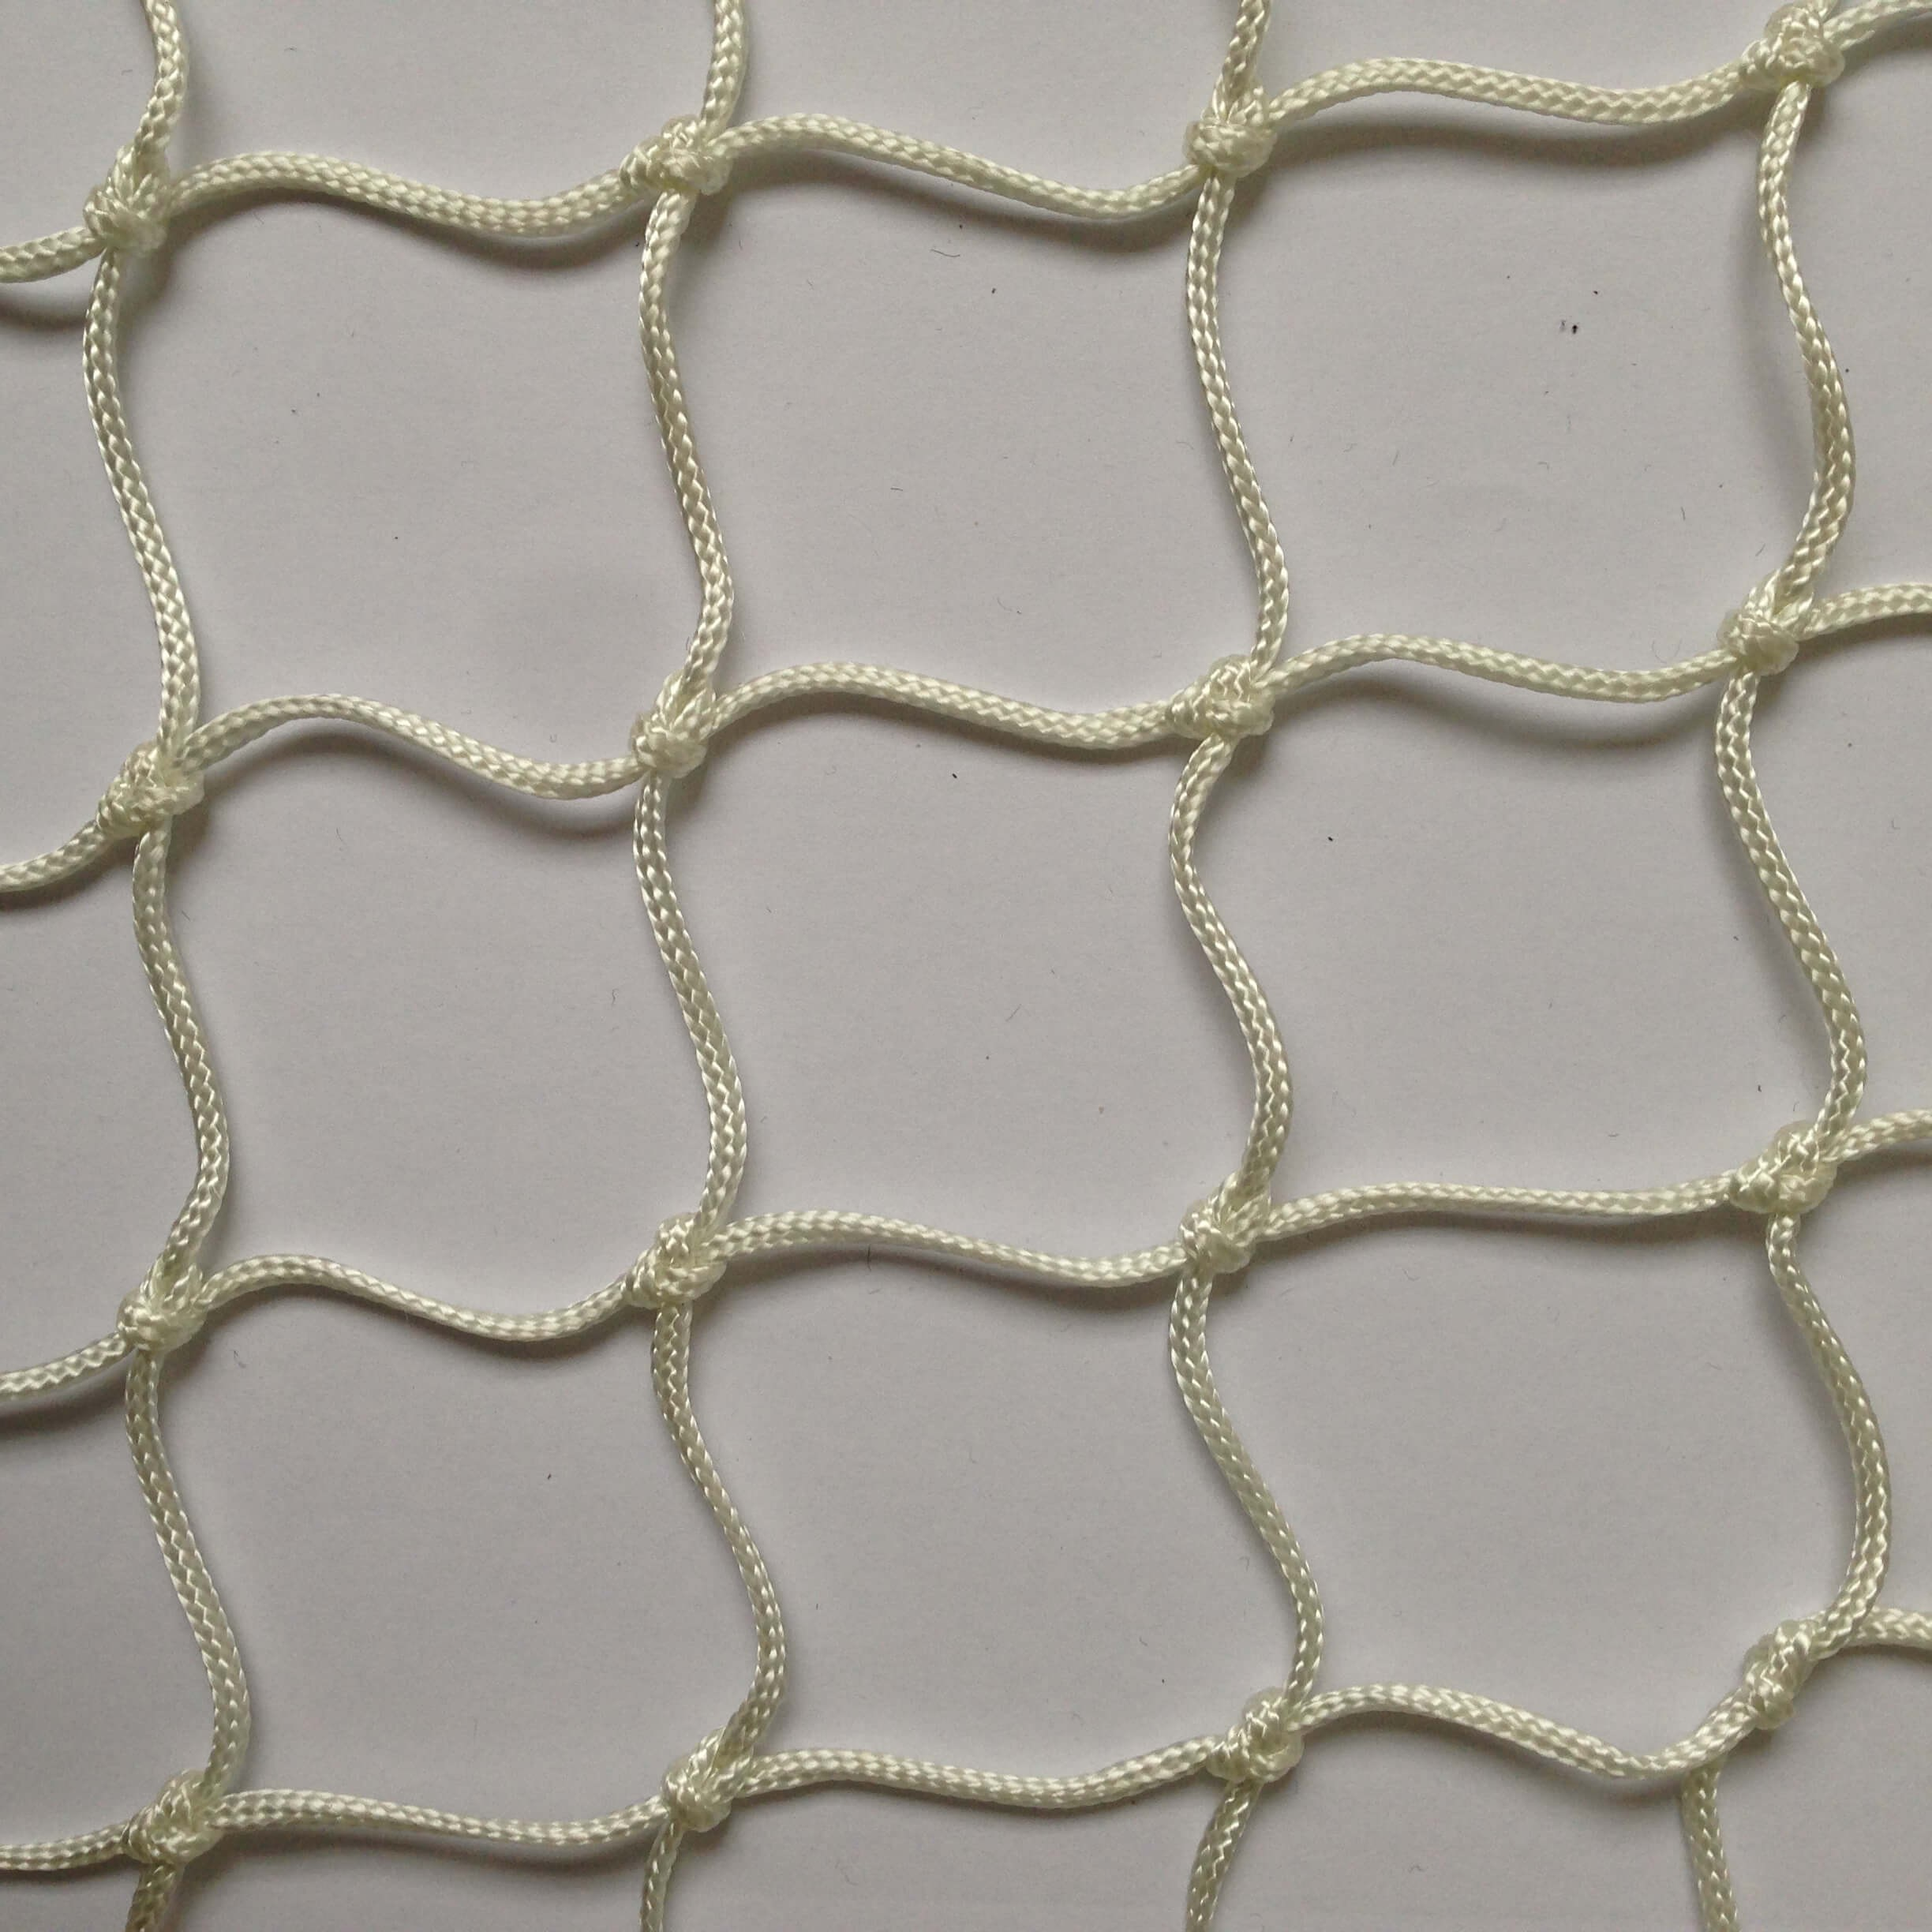 Filet de rayonnage - mailles 50 x 50 mm - ∅ 3 mm